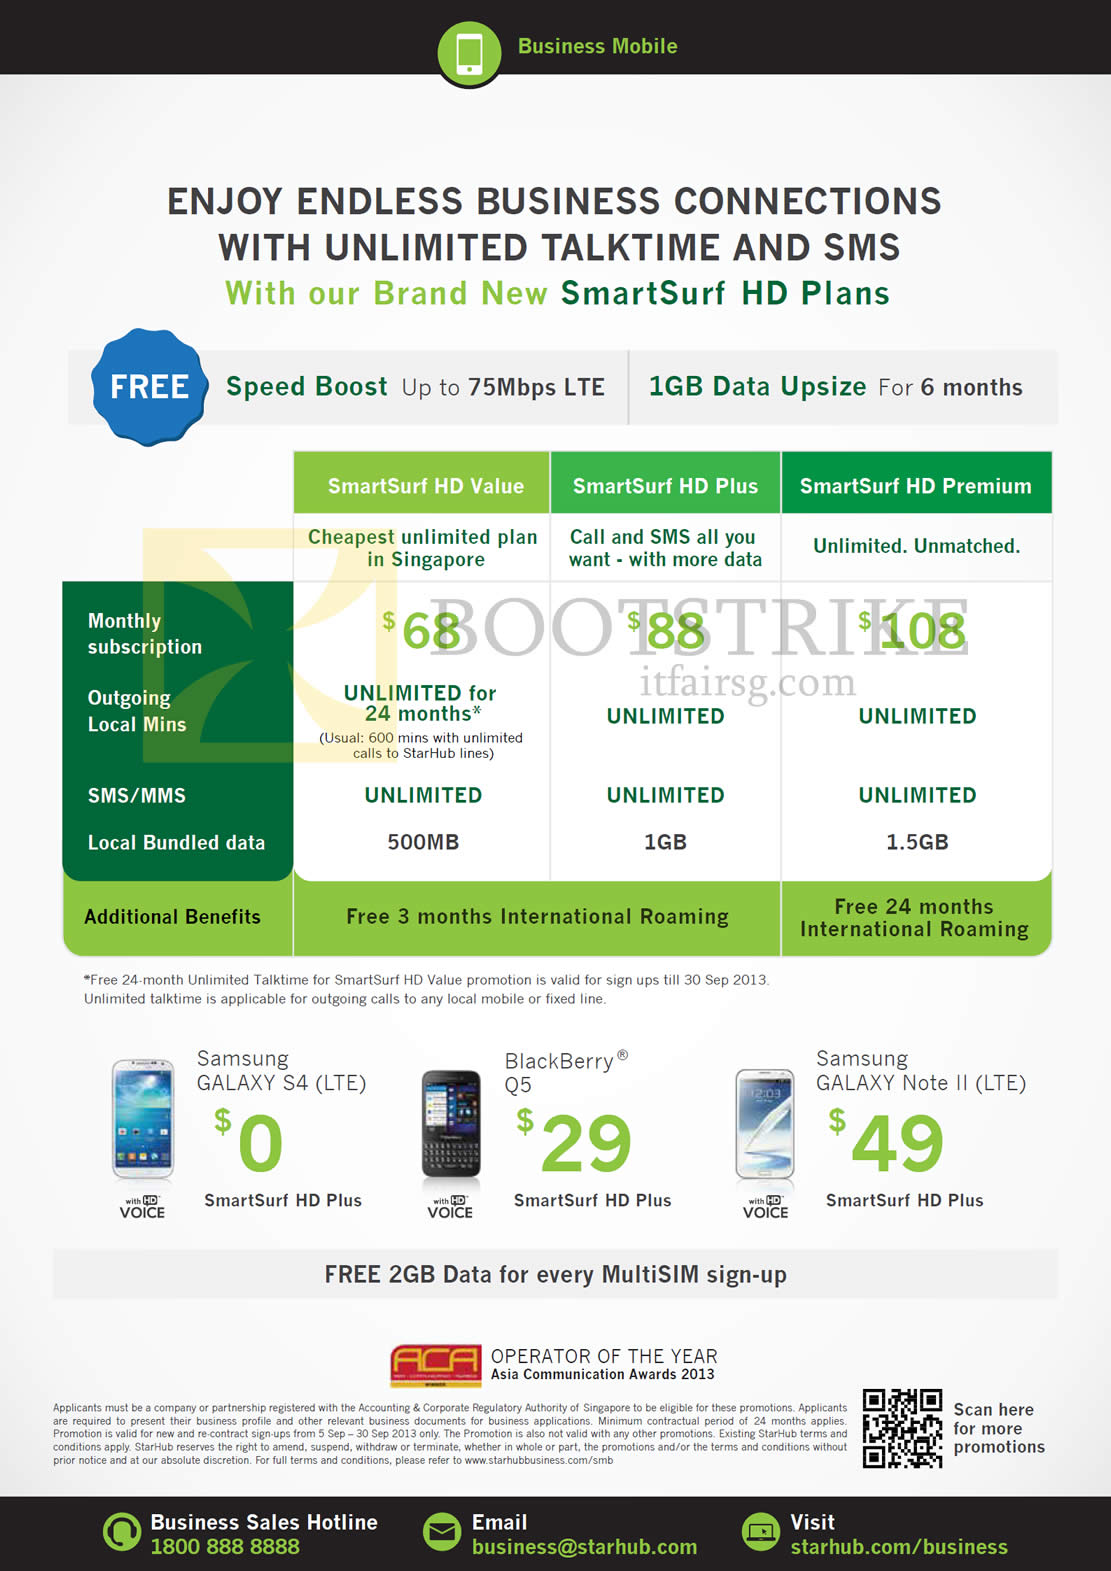 COMEX 2013 price list image brochure of Starhub Business Mobile Plans SmartSurf HD Value Plus Premium, Samsung Galaxy S4, Note II, Blackberry Q5